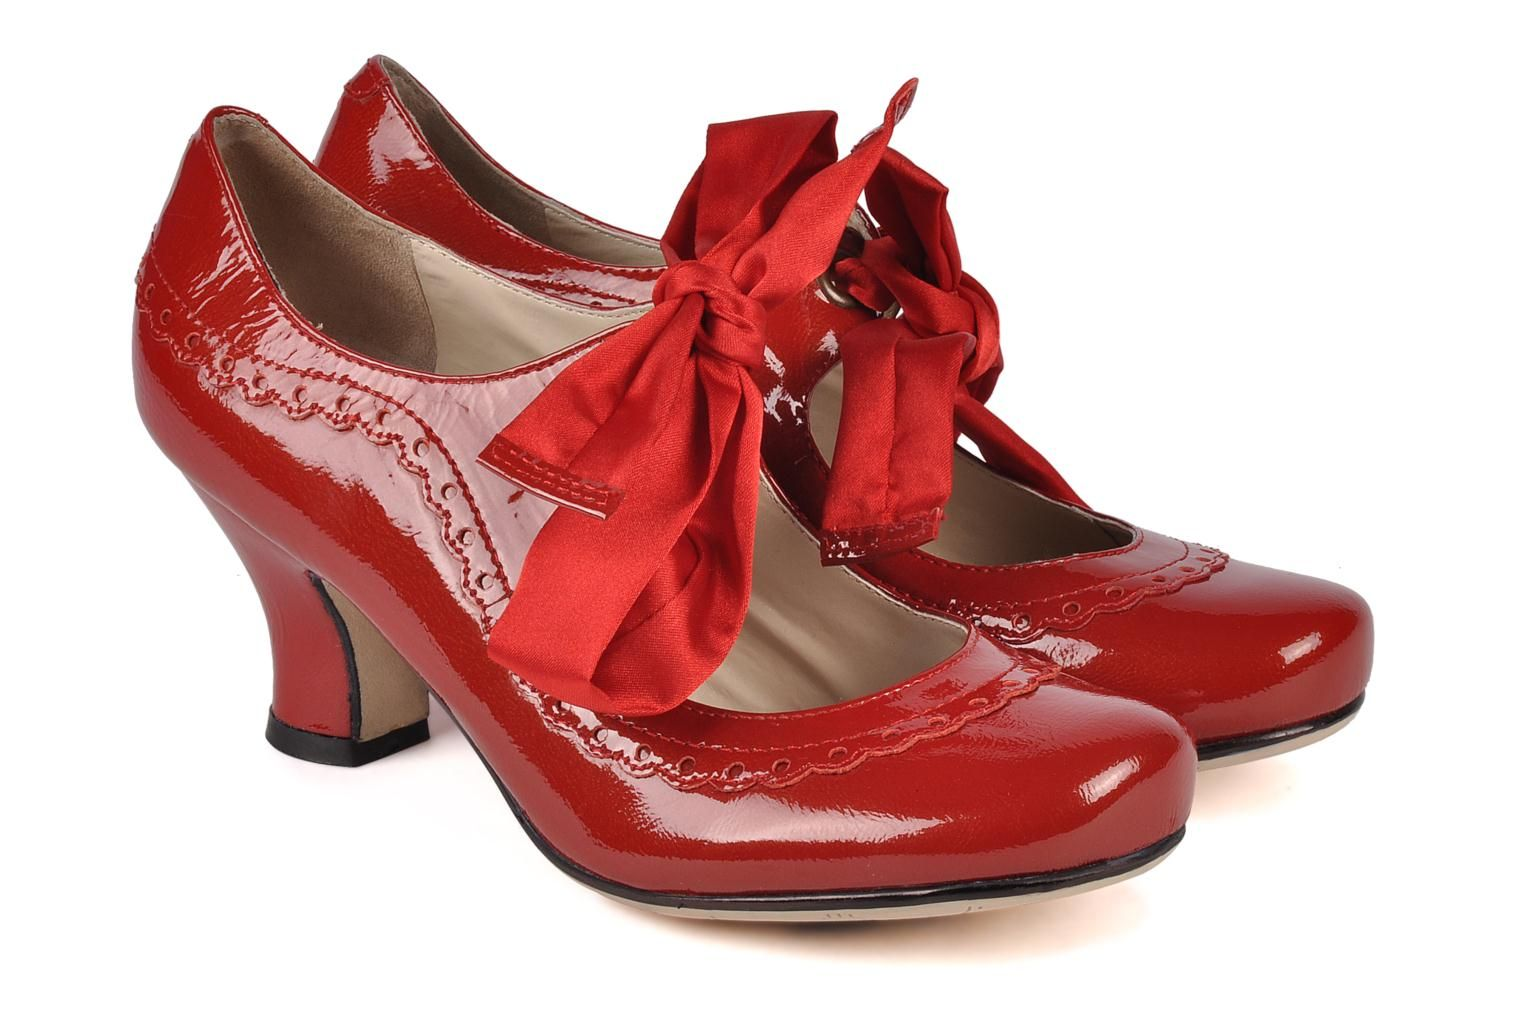 Hush Puppies Noella High Heels In Red At Sarenza Co Uk 45626 Comfortable Stylish Shoes Hush Puppies Comfortable Shoes